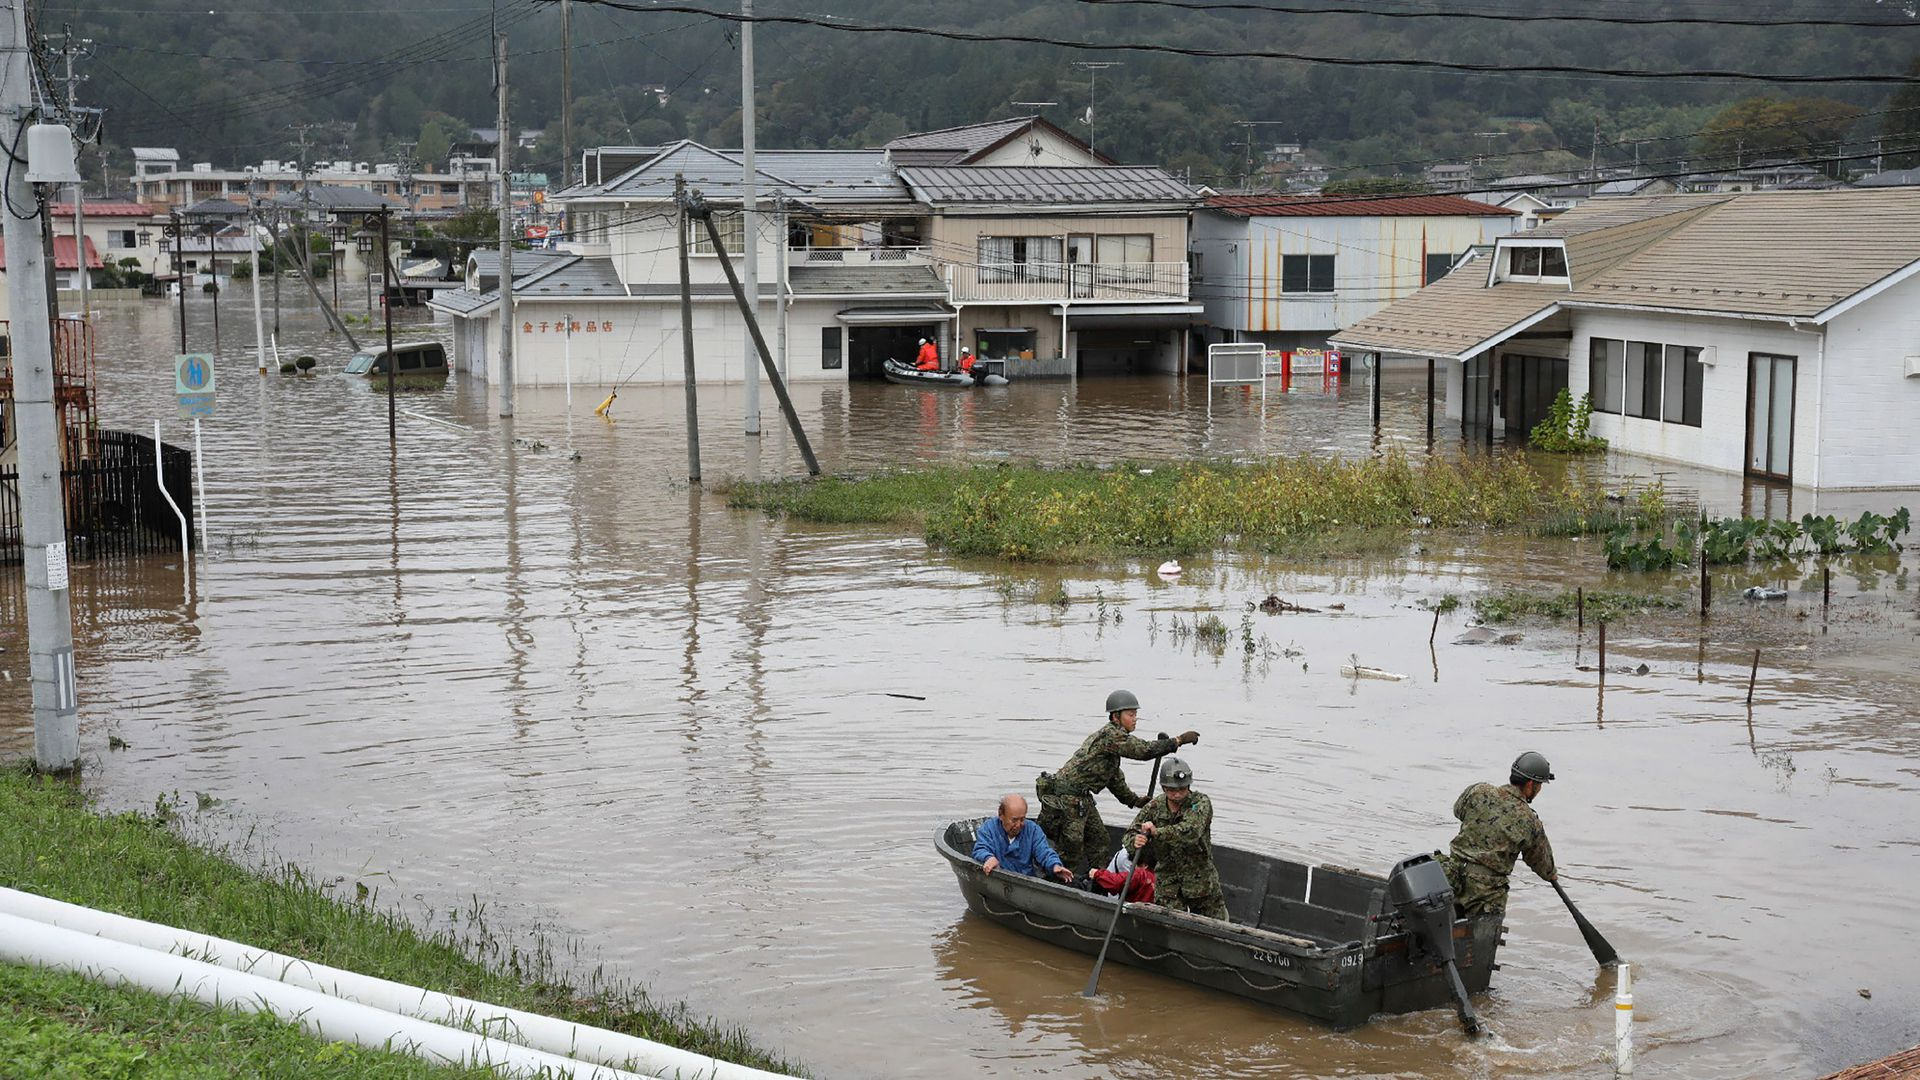 Japan Self-Defense Forces evacuate residents from a flooded area during search and rescue operations in the aftermath of Typhoon Hagibis in Marumori, Miyagi prefecture on October 14, 2019